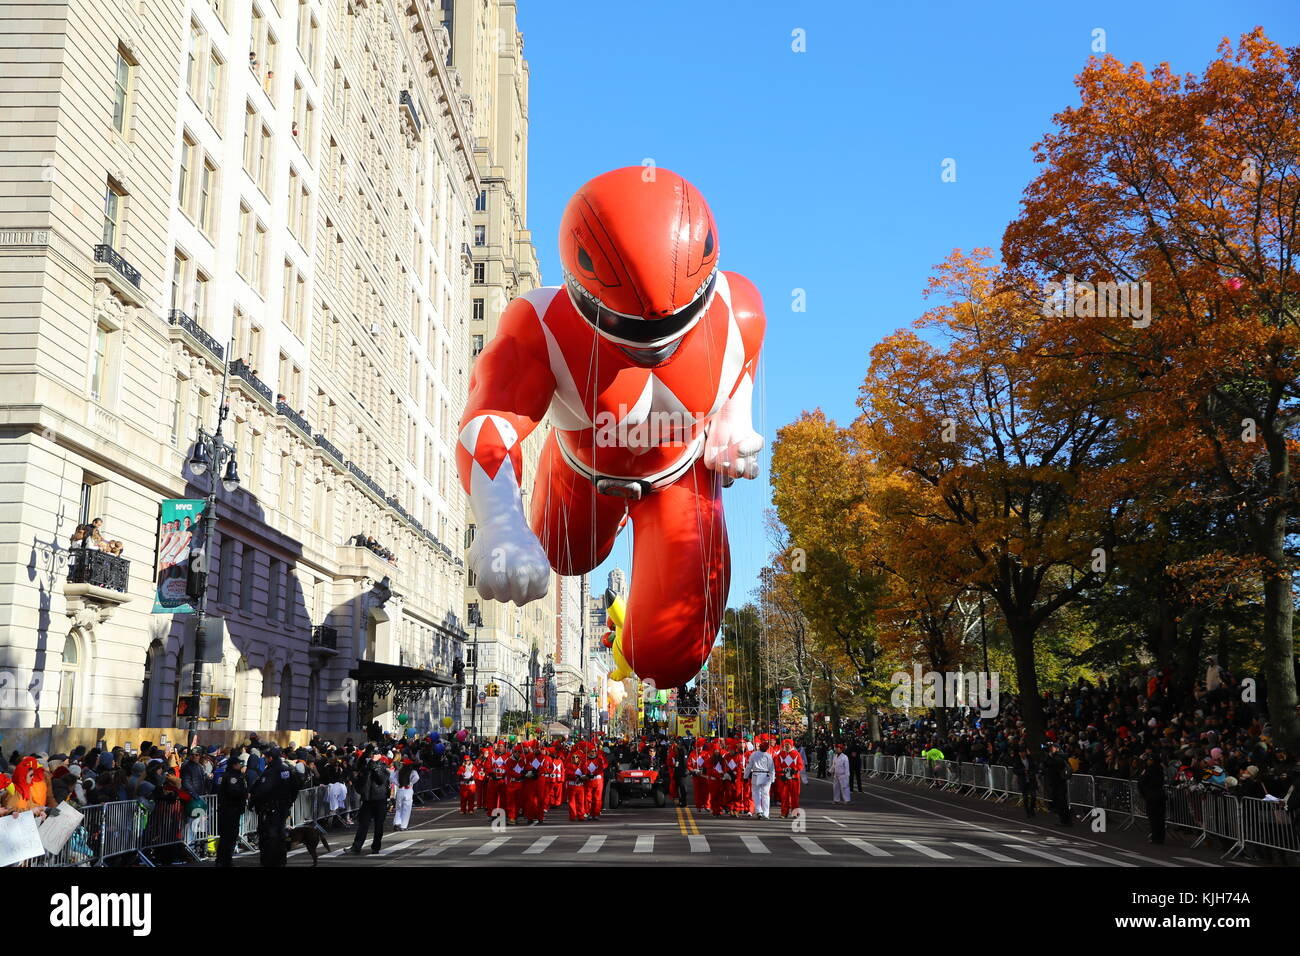 New York, USA. 23rd Nov, 2017. The Red Mighty Morphin Power Ranger balloon is led down Central Park West in the - Stock Image